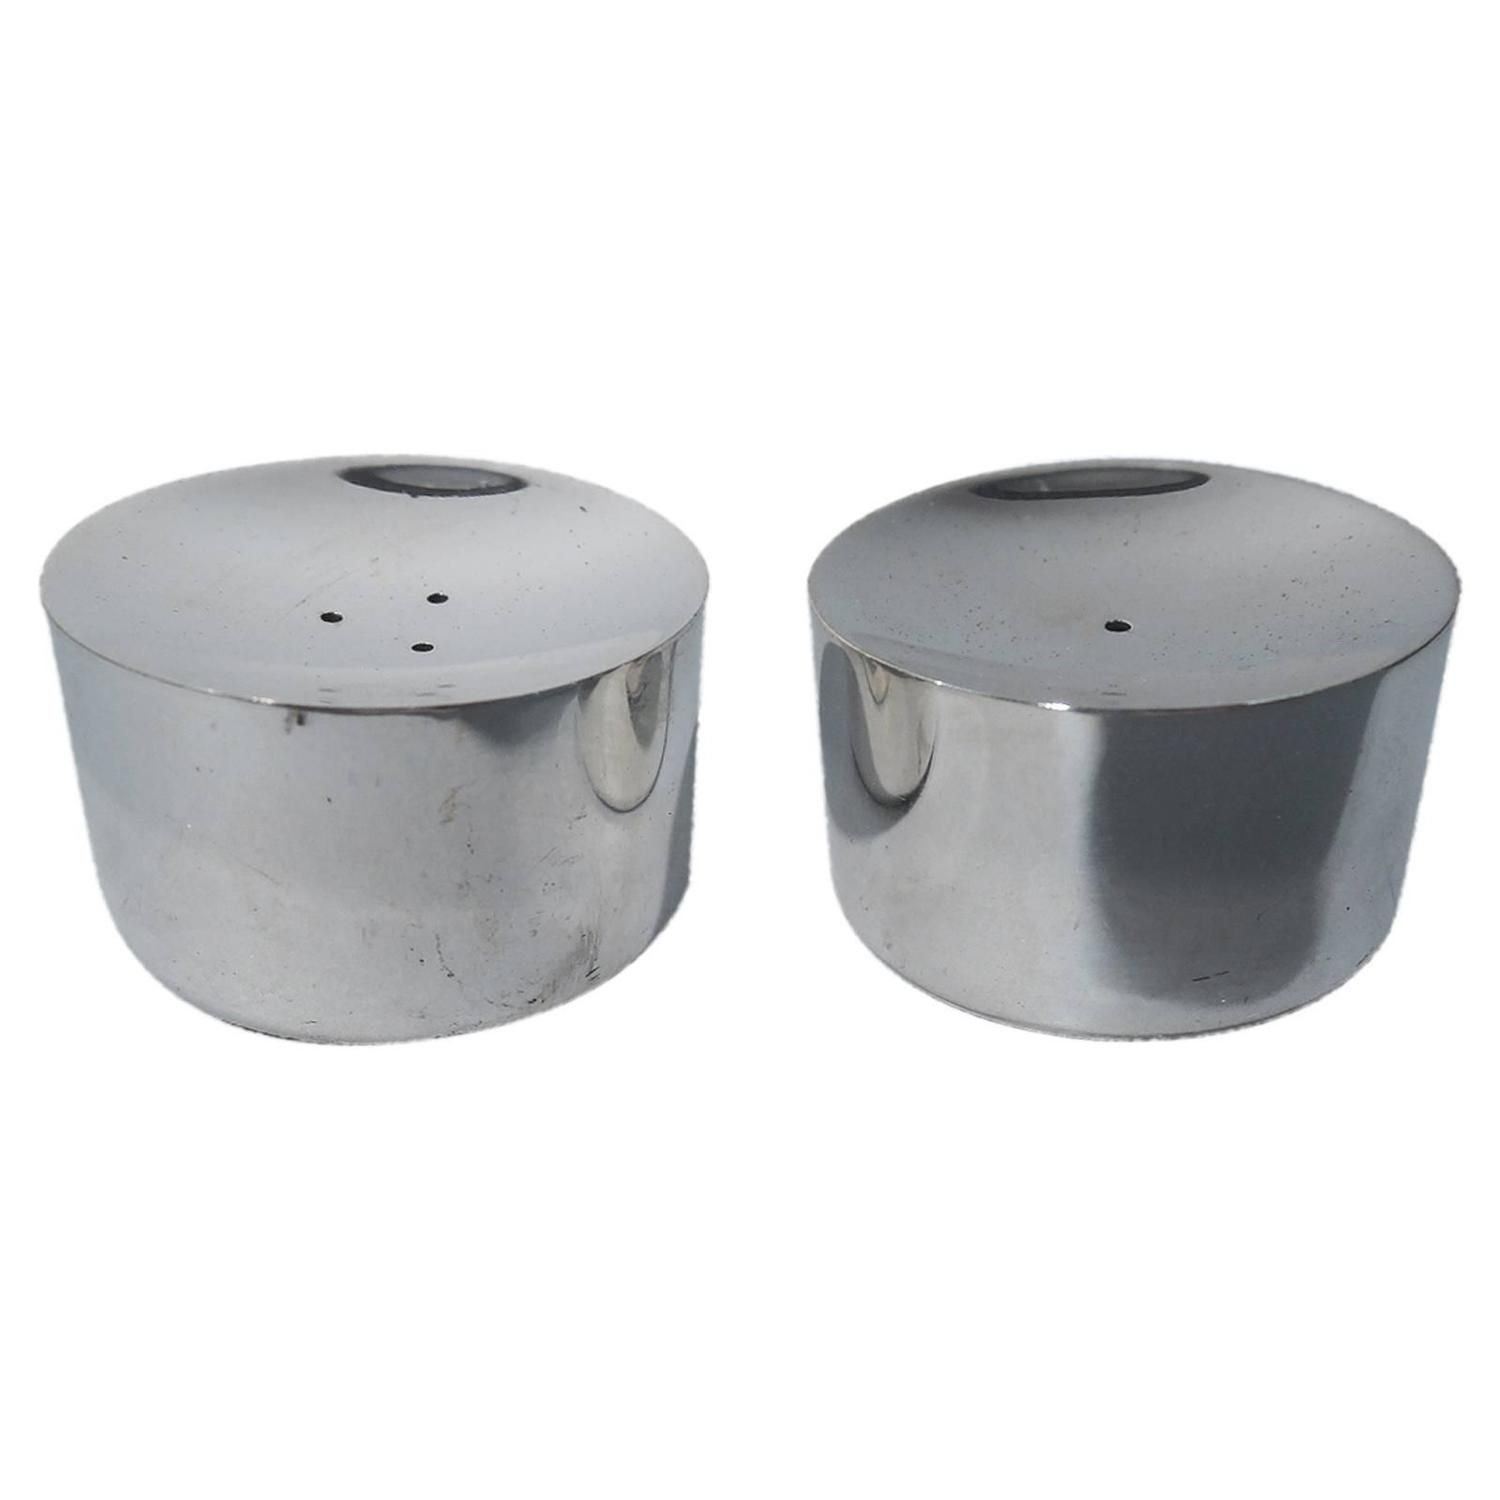 Midcentury Sterling Silver Salt and Pepper Shakers by Michelsen